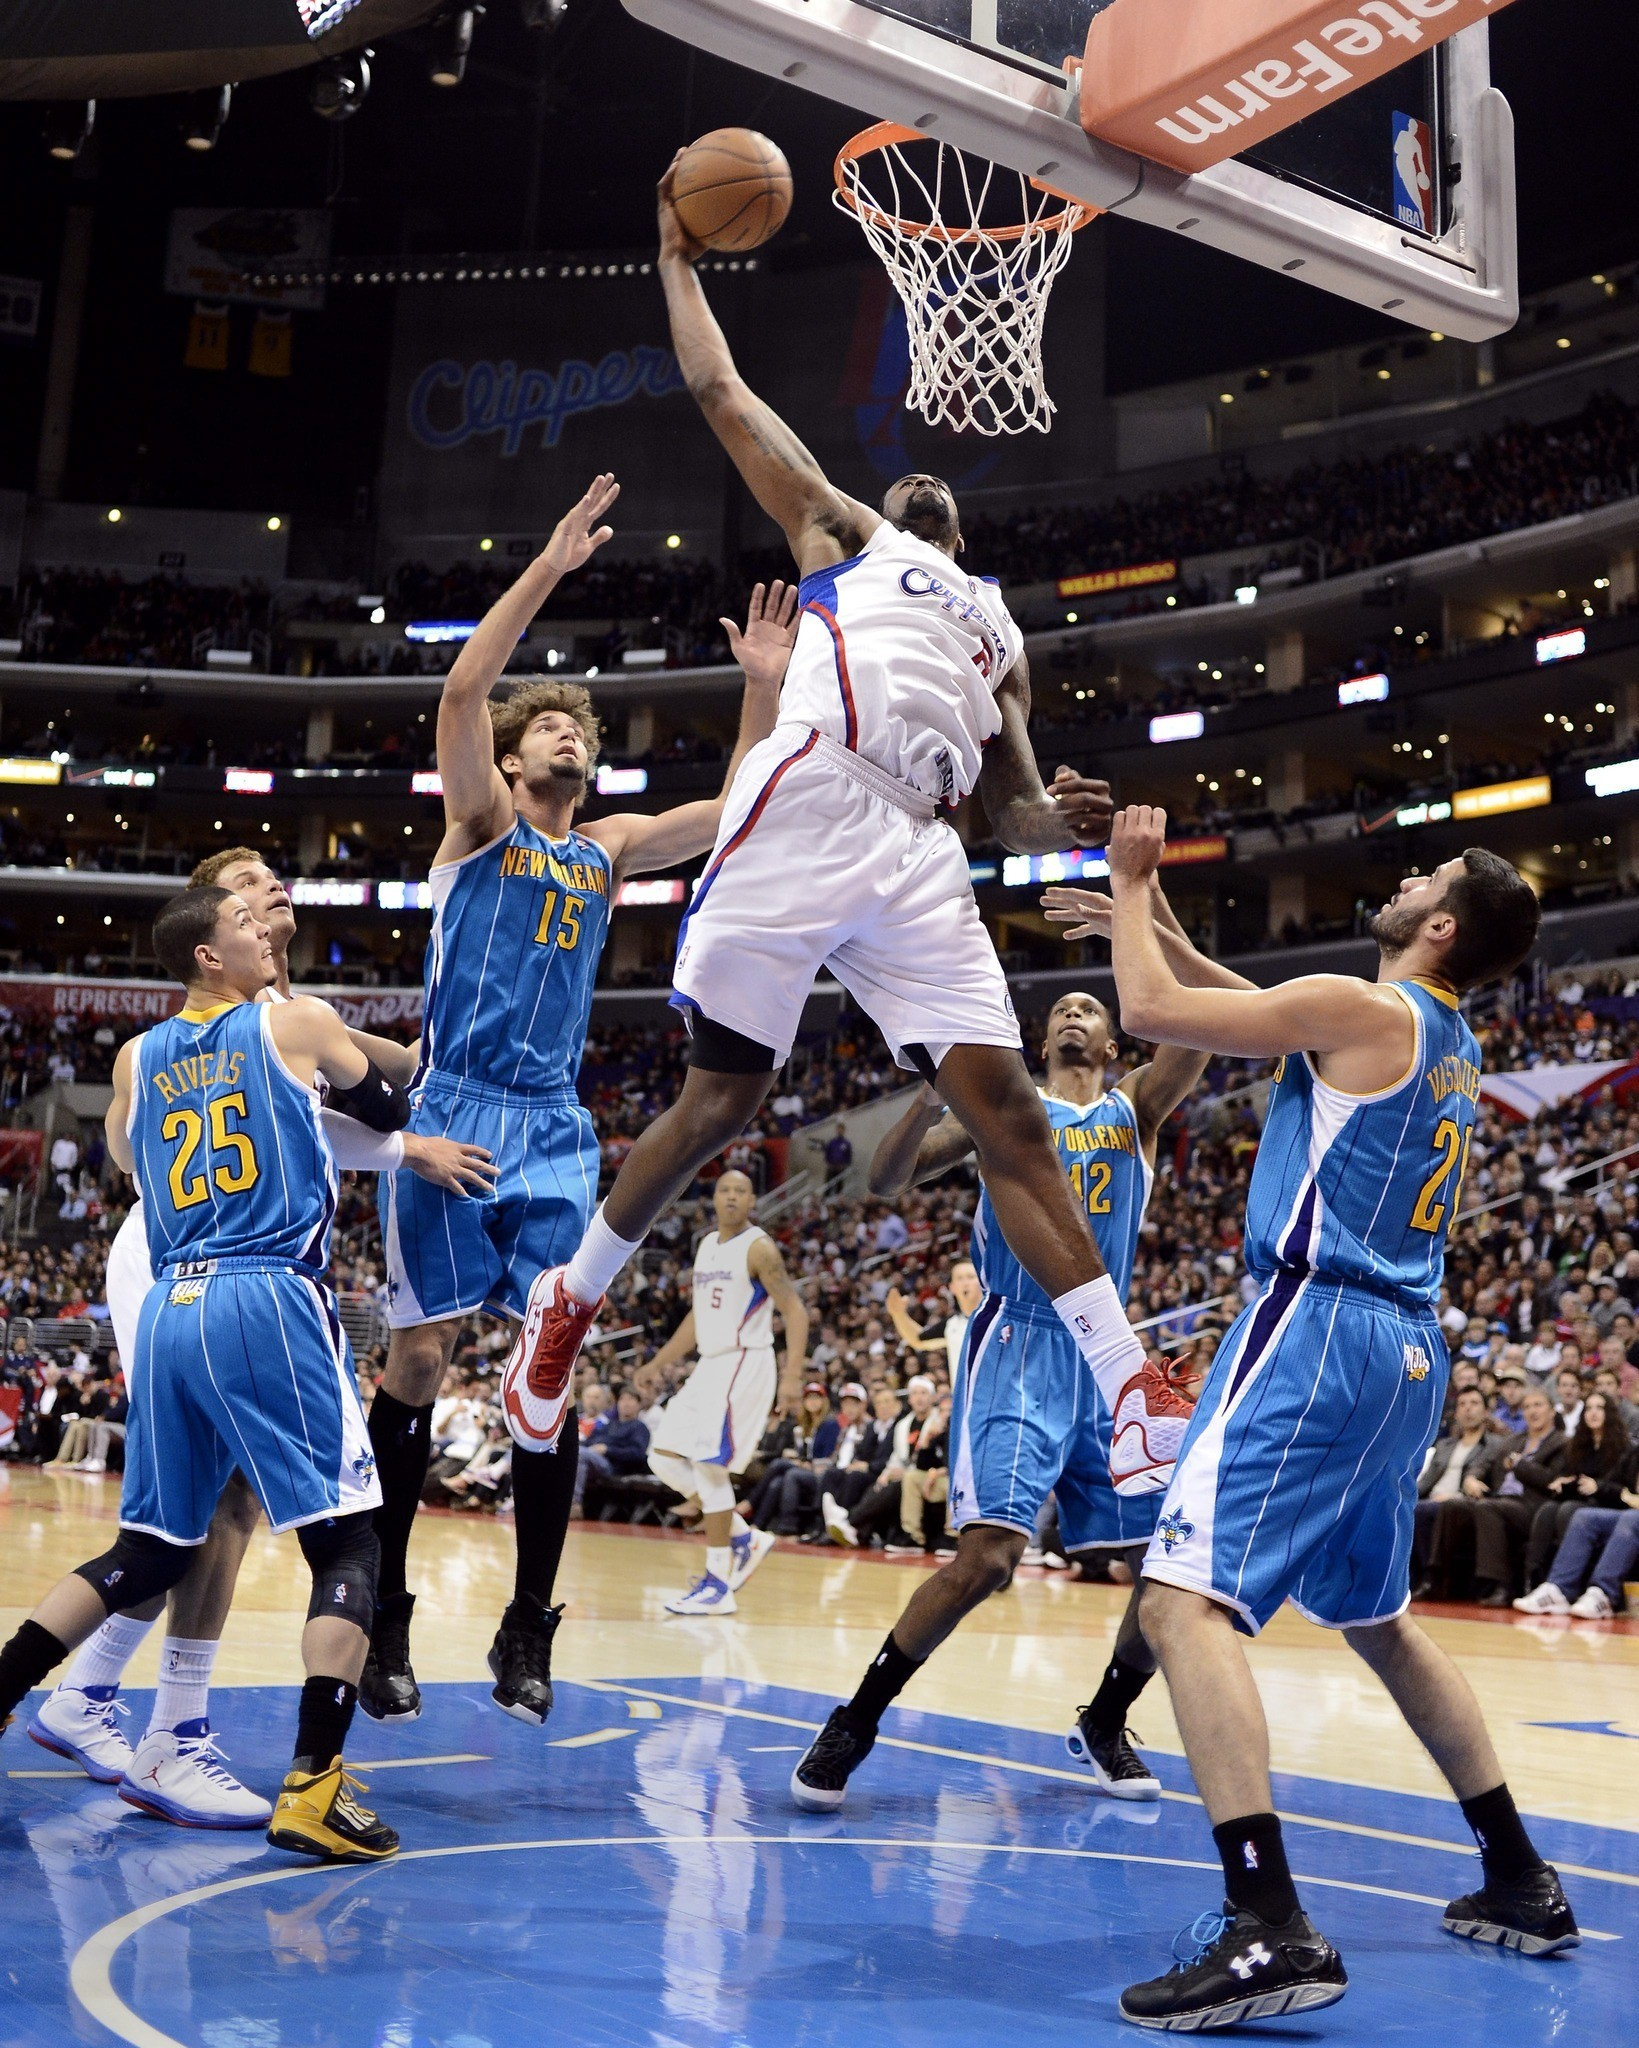 Photos: Clippers vs. Hornets - DeAndre Jordan